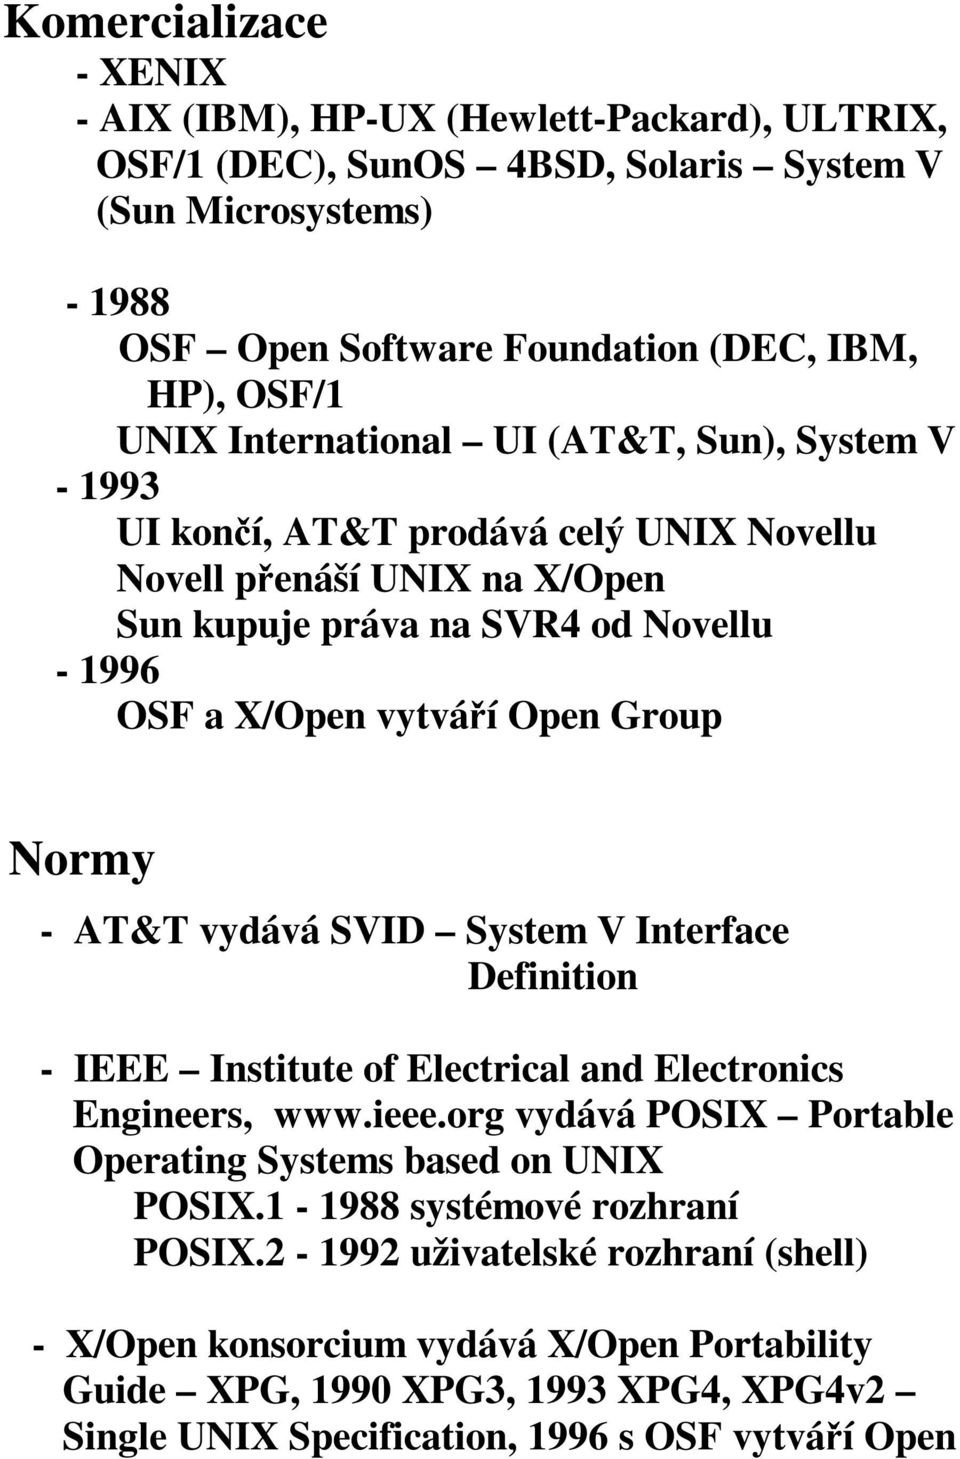 Normy - AT&T vydává SVID System V Interface Definition - IEEE Institute of Electrical and Electronics Engineers, www.ieee.org vydává POSIX Portable Operating Systems based on UNIX POSIX.